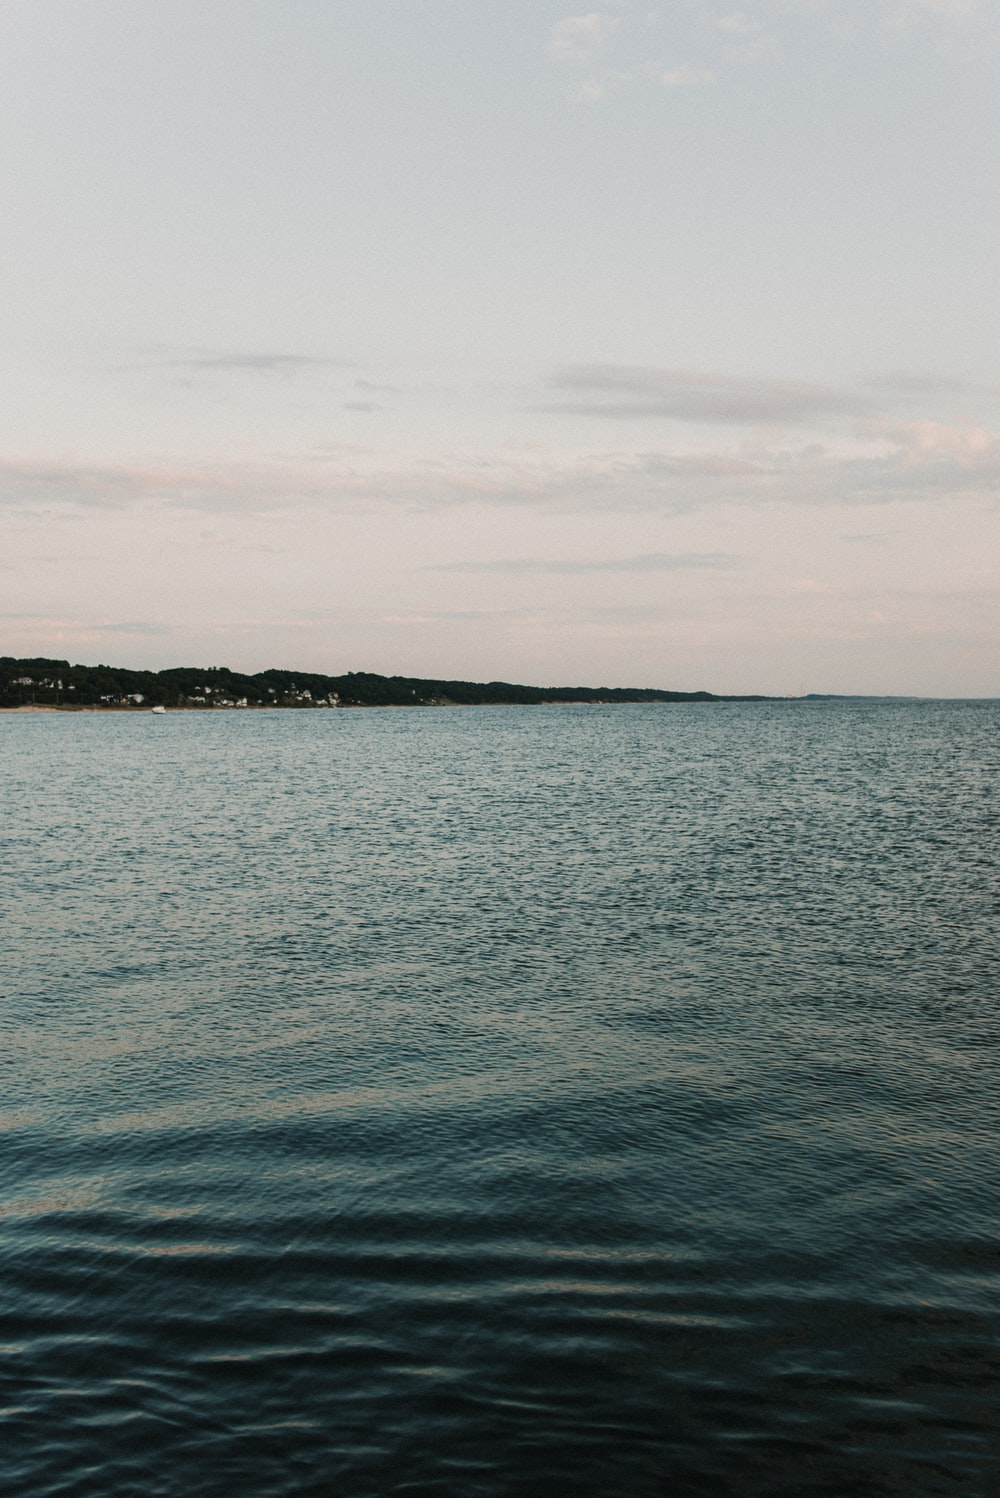 body of water during day